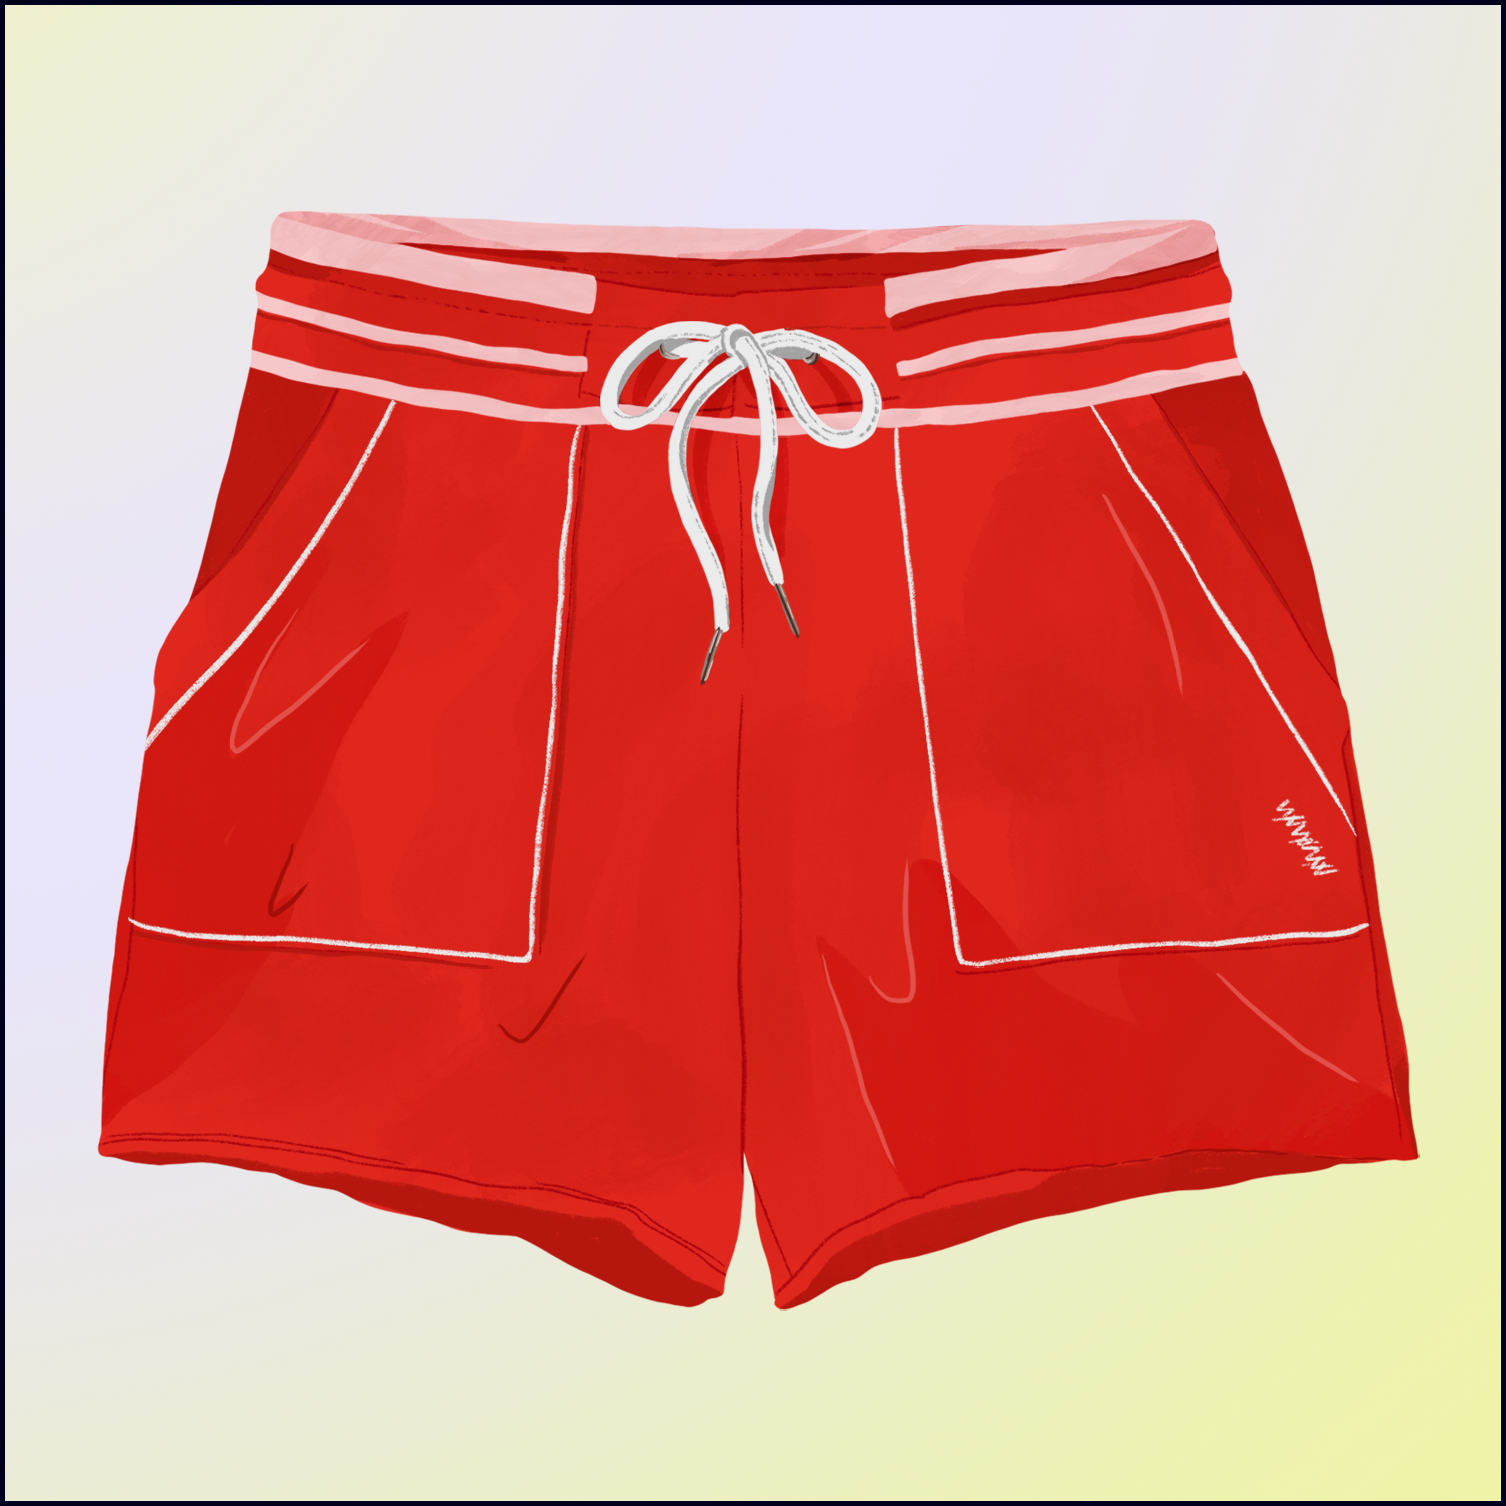 Wknd_Nation_BoardroomShorts_Cherry_1x1